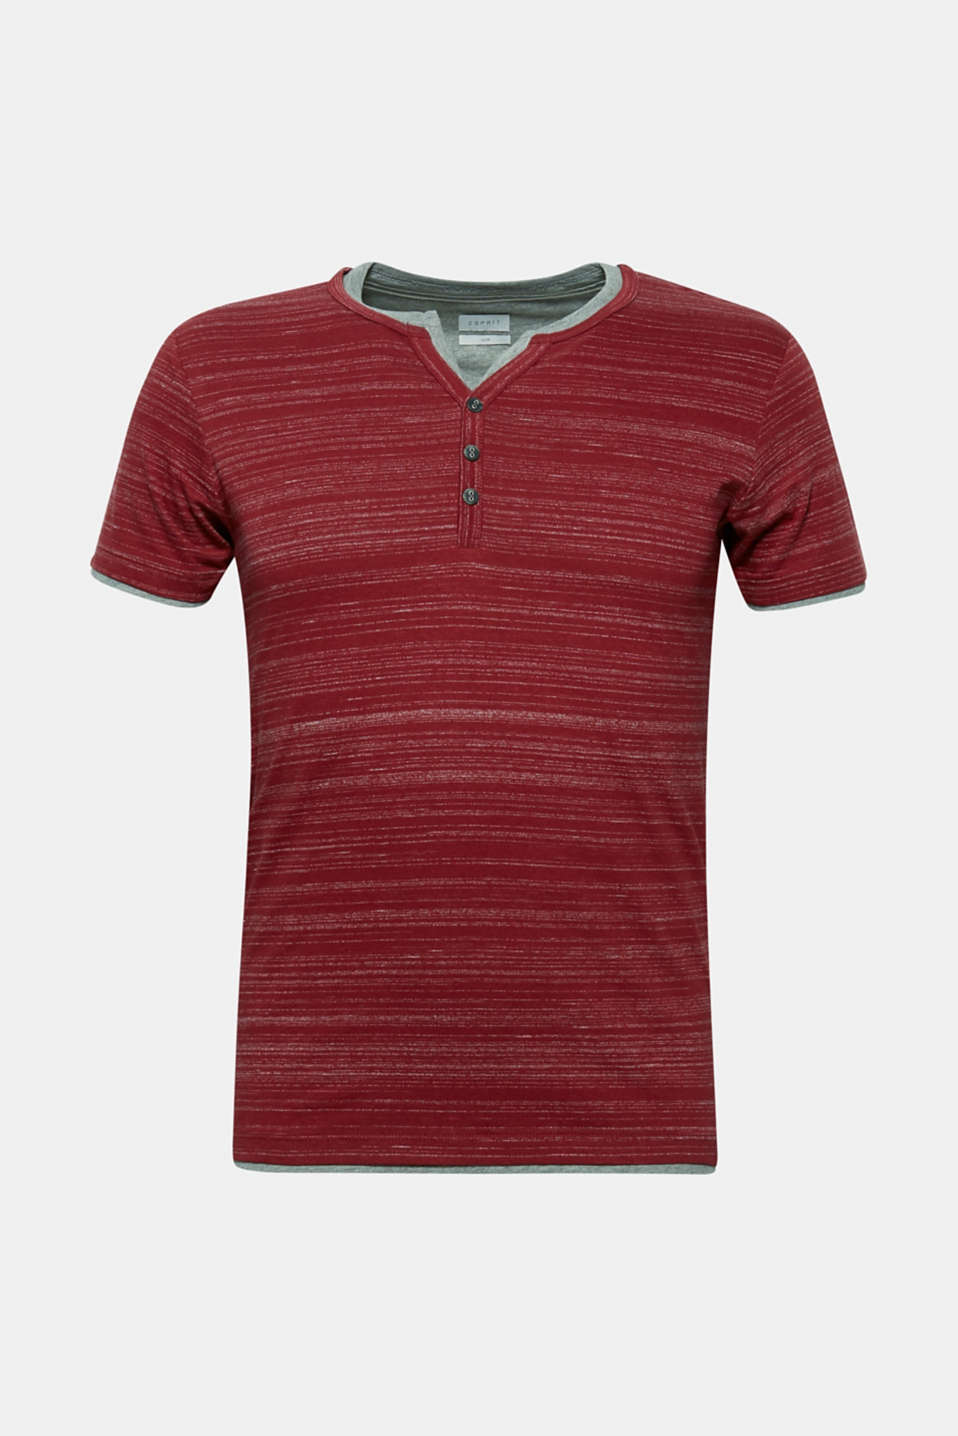 T-shirt with a layered look, made of jersey, BORDEAUX RED, detail image number 5